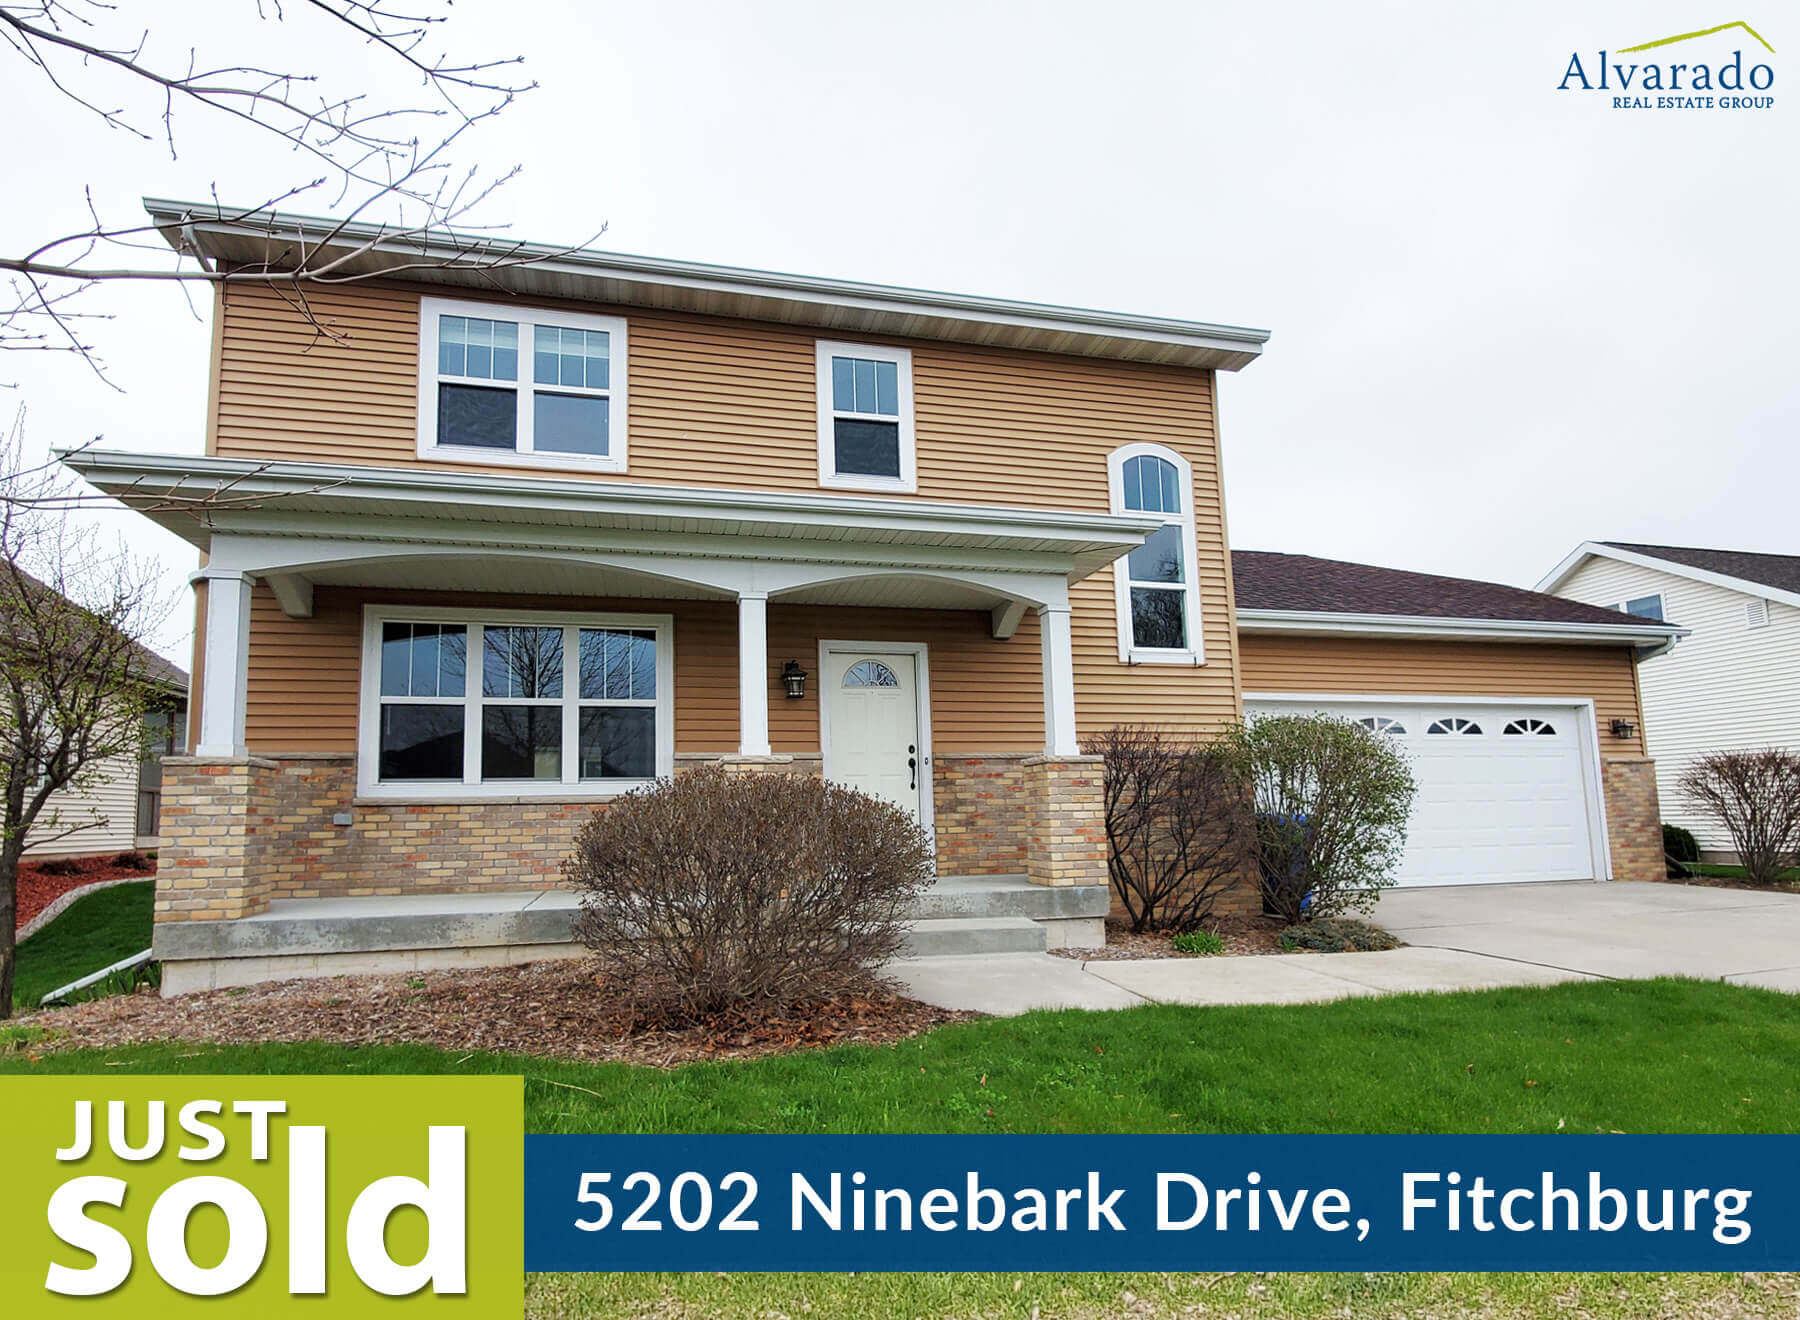 5202 Ninebark Drive, Fitchburg – Sold by Alvarado Real Estate Group